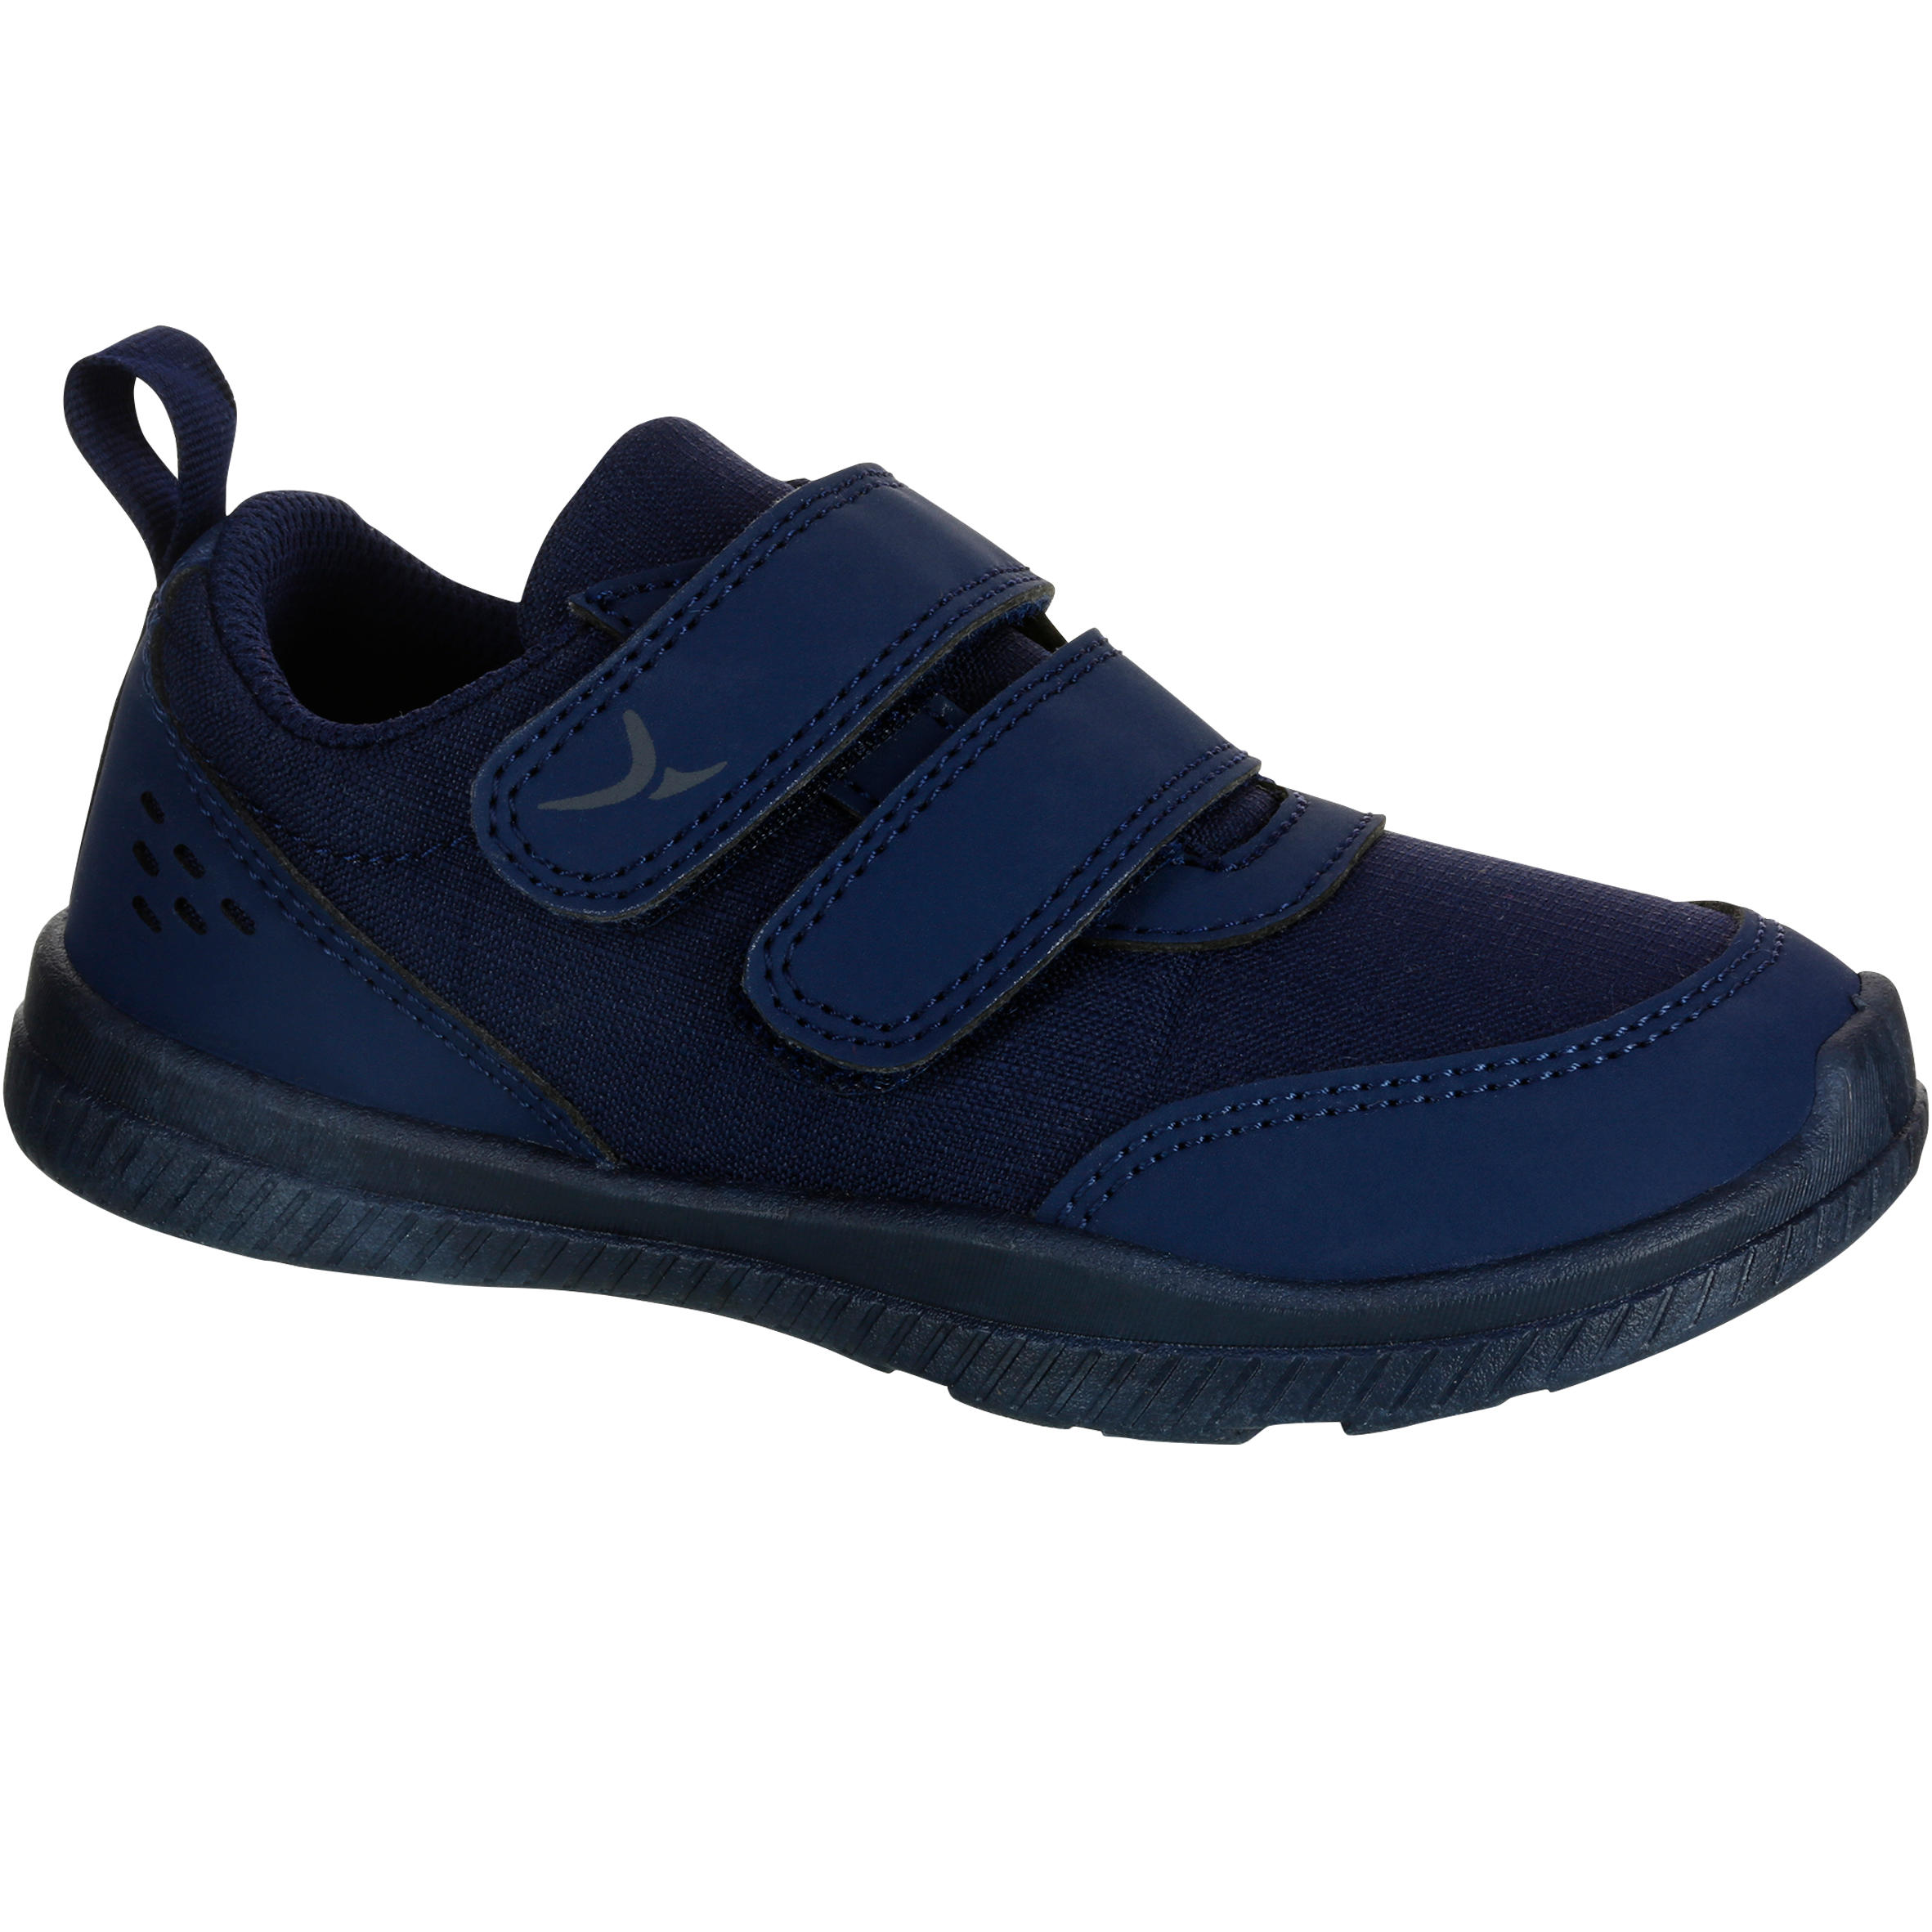 I Move First Gym Shoes - Navy